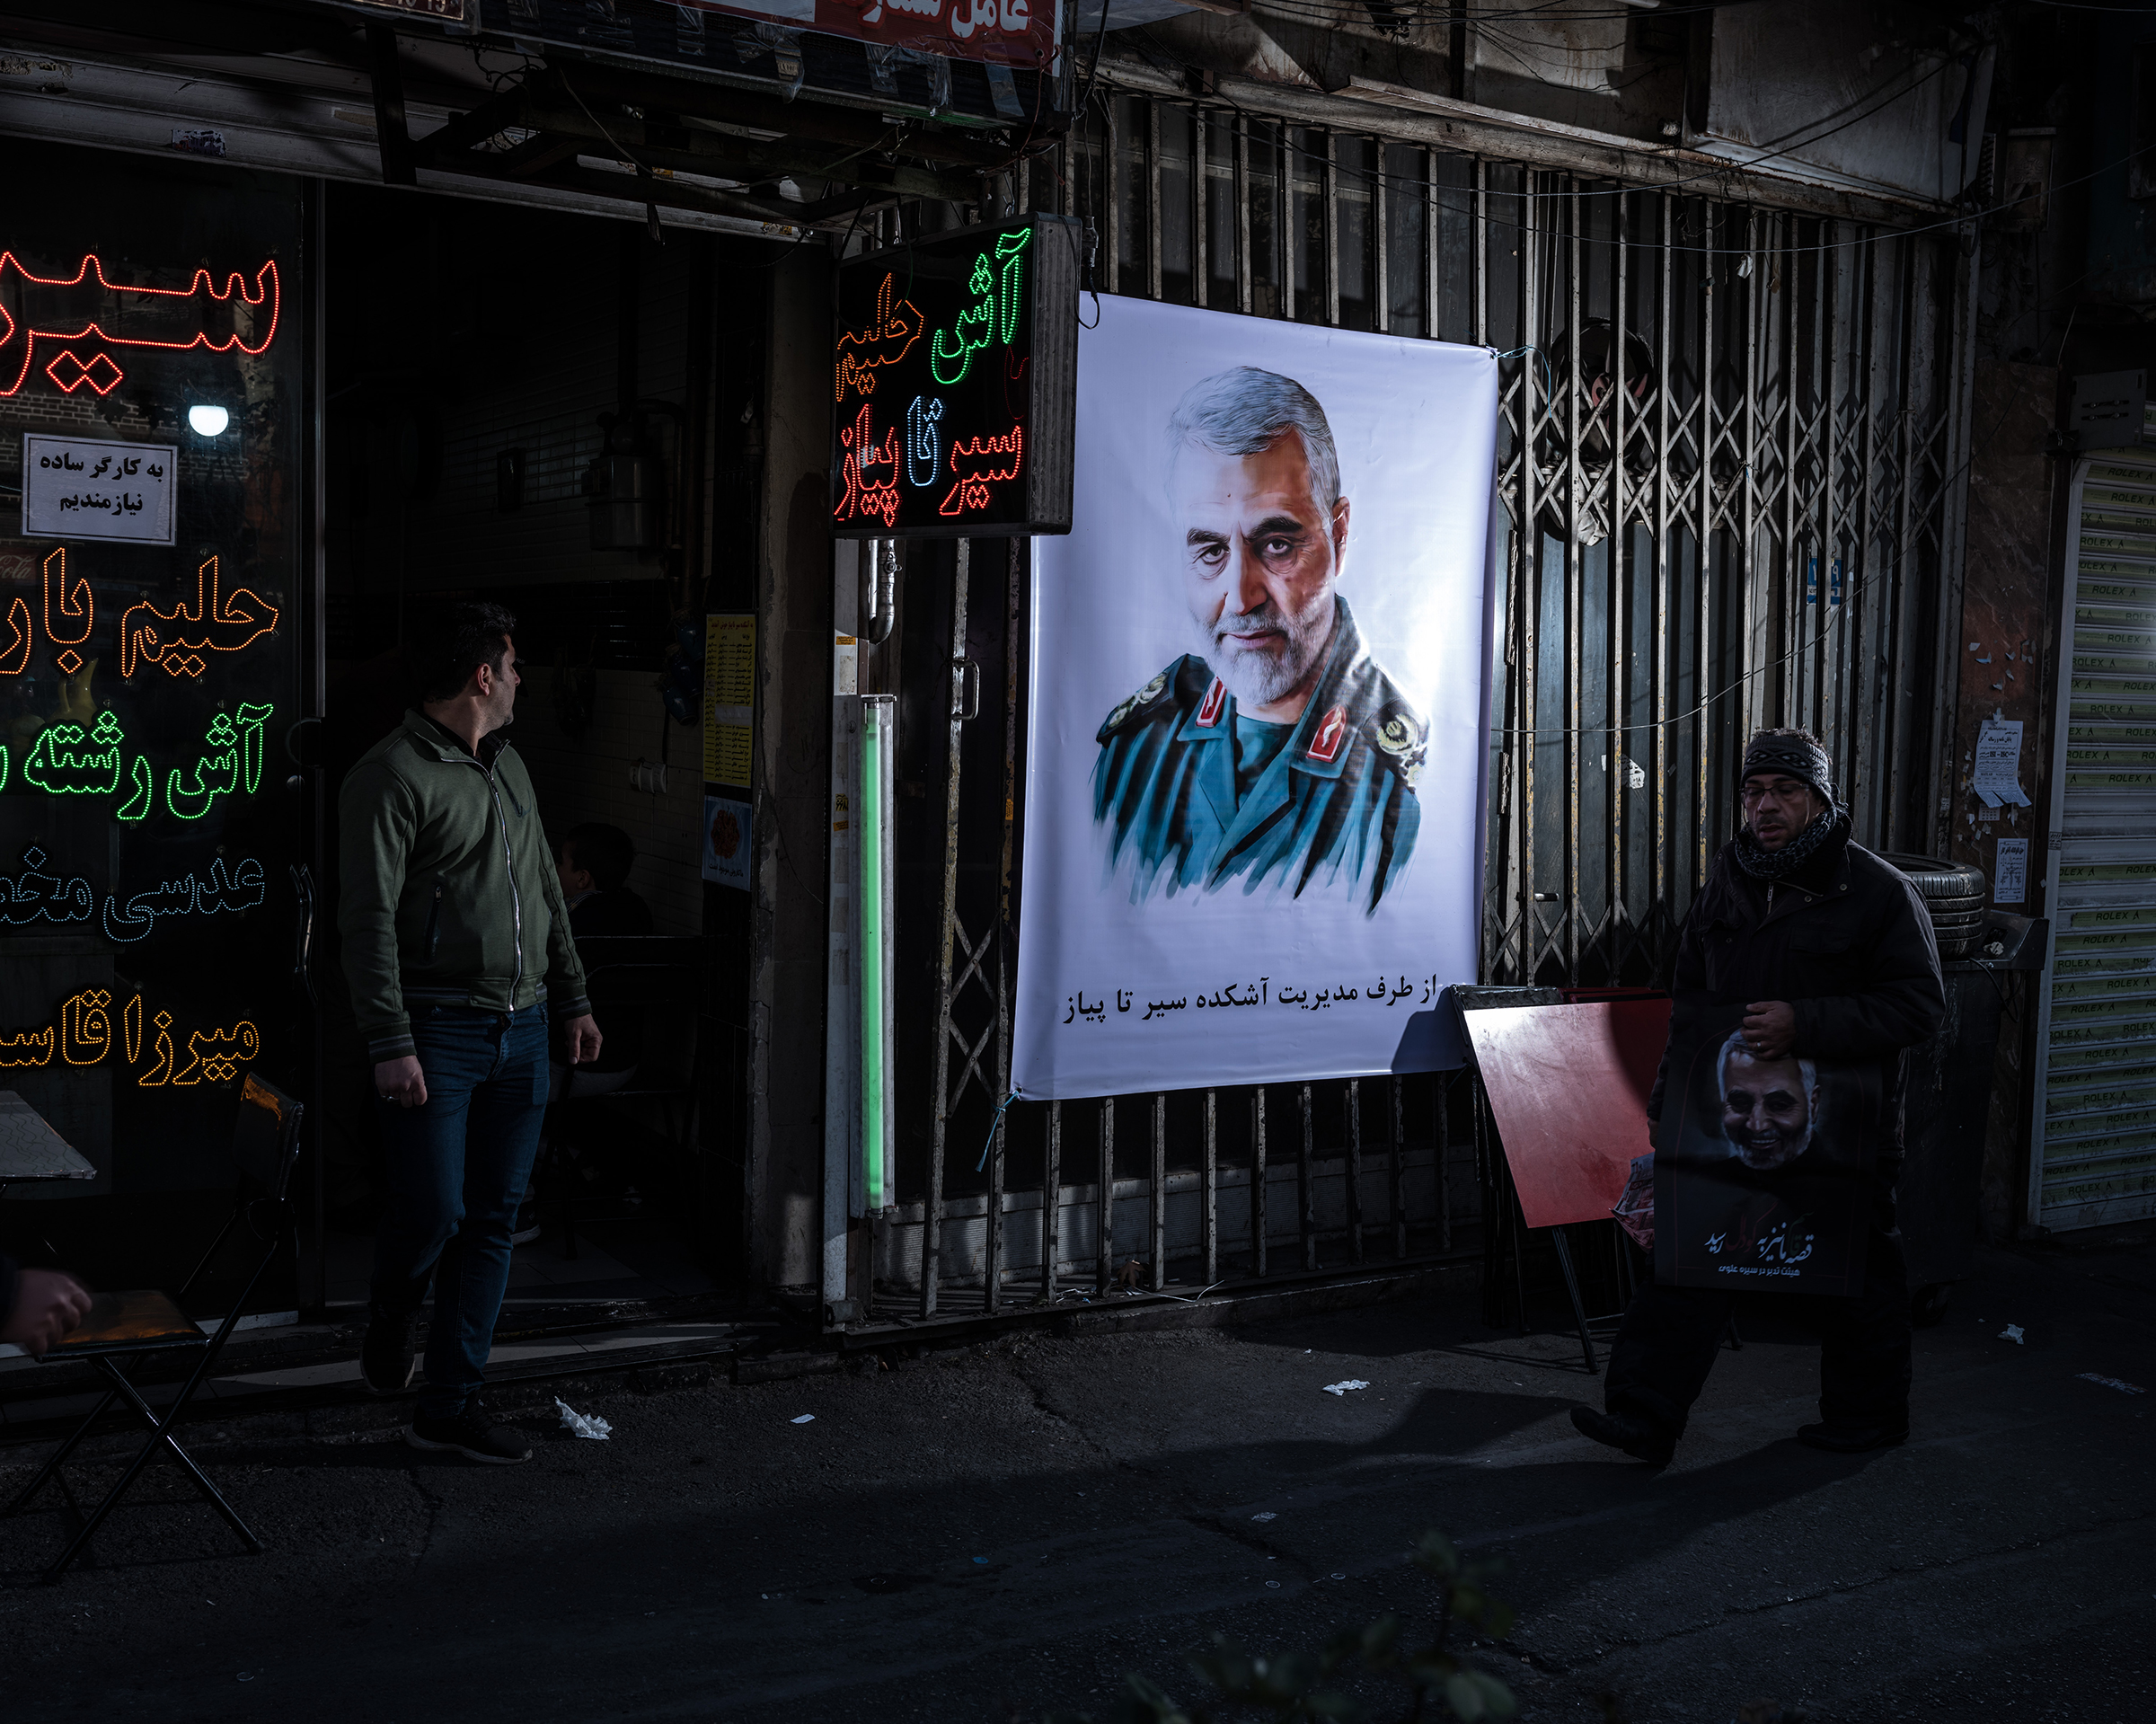 In the immediate aftermath of his death, Soleimani's face appeared everywhere in Tehran.